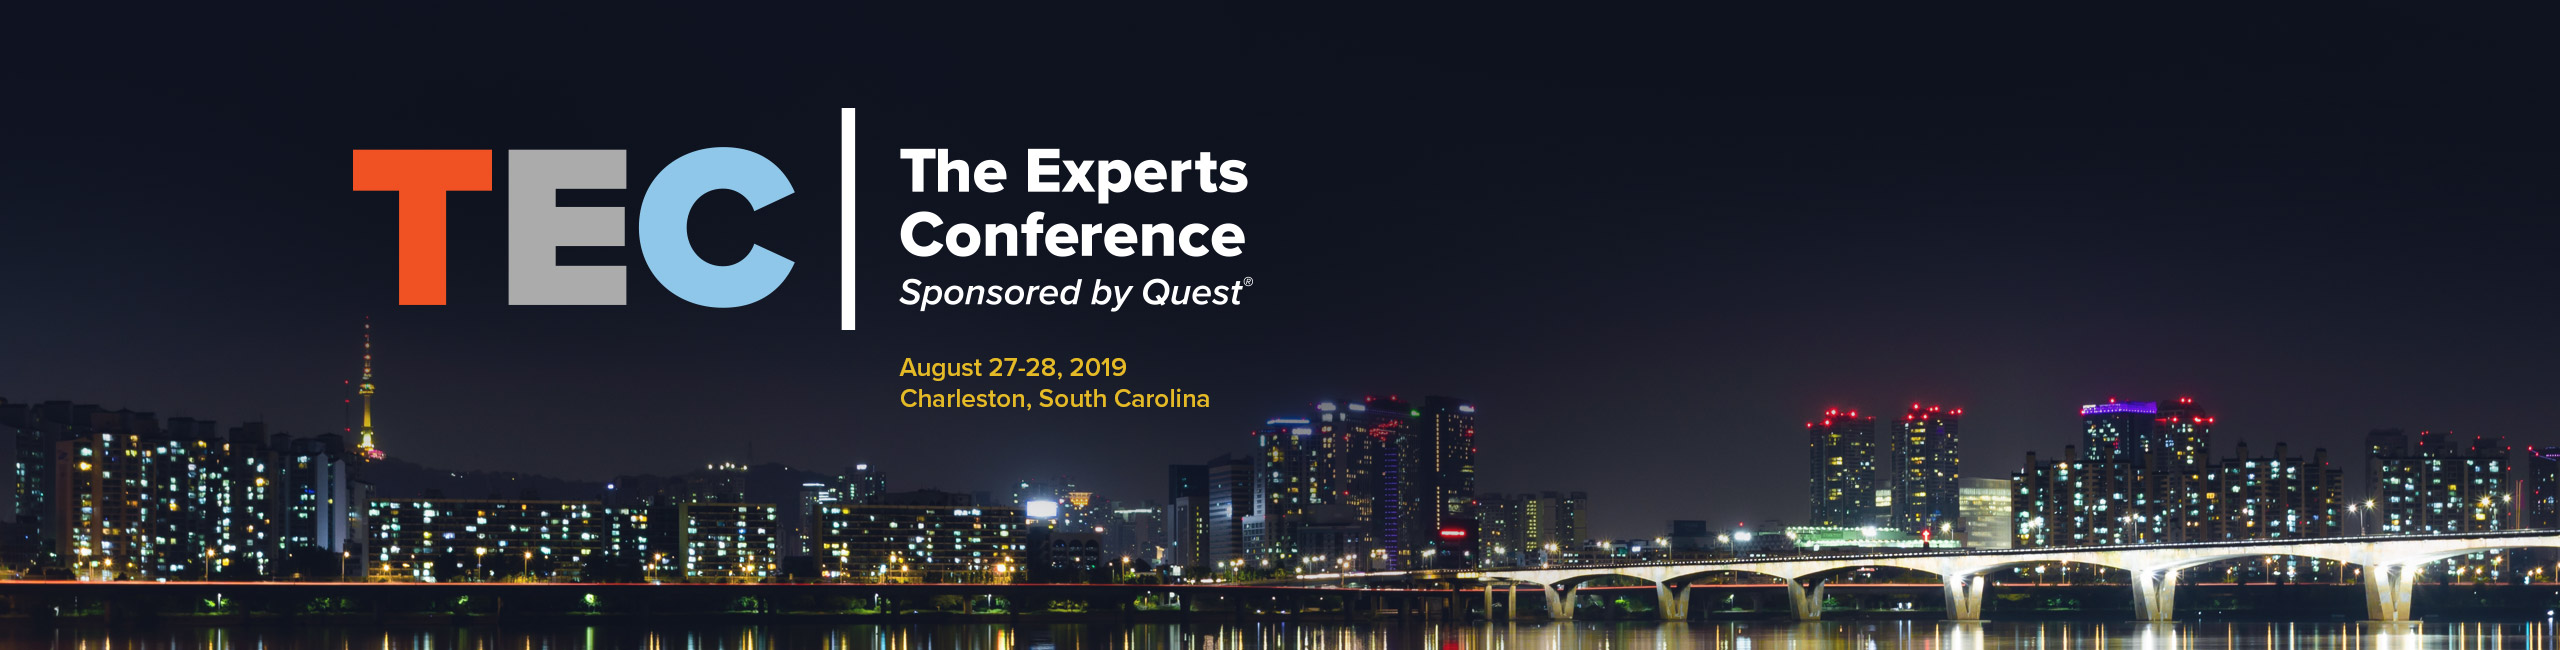 Join us for TEC: 2019 in timeless Charleston, SC for world-class training and networking.